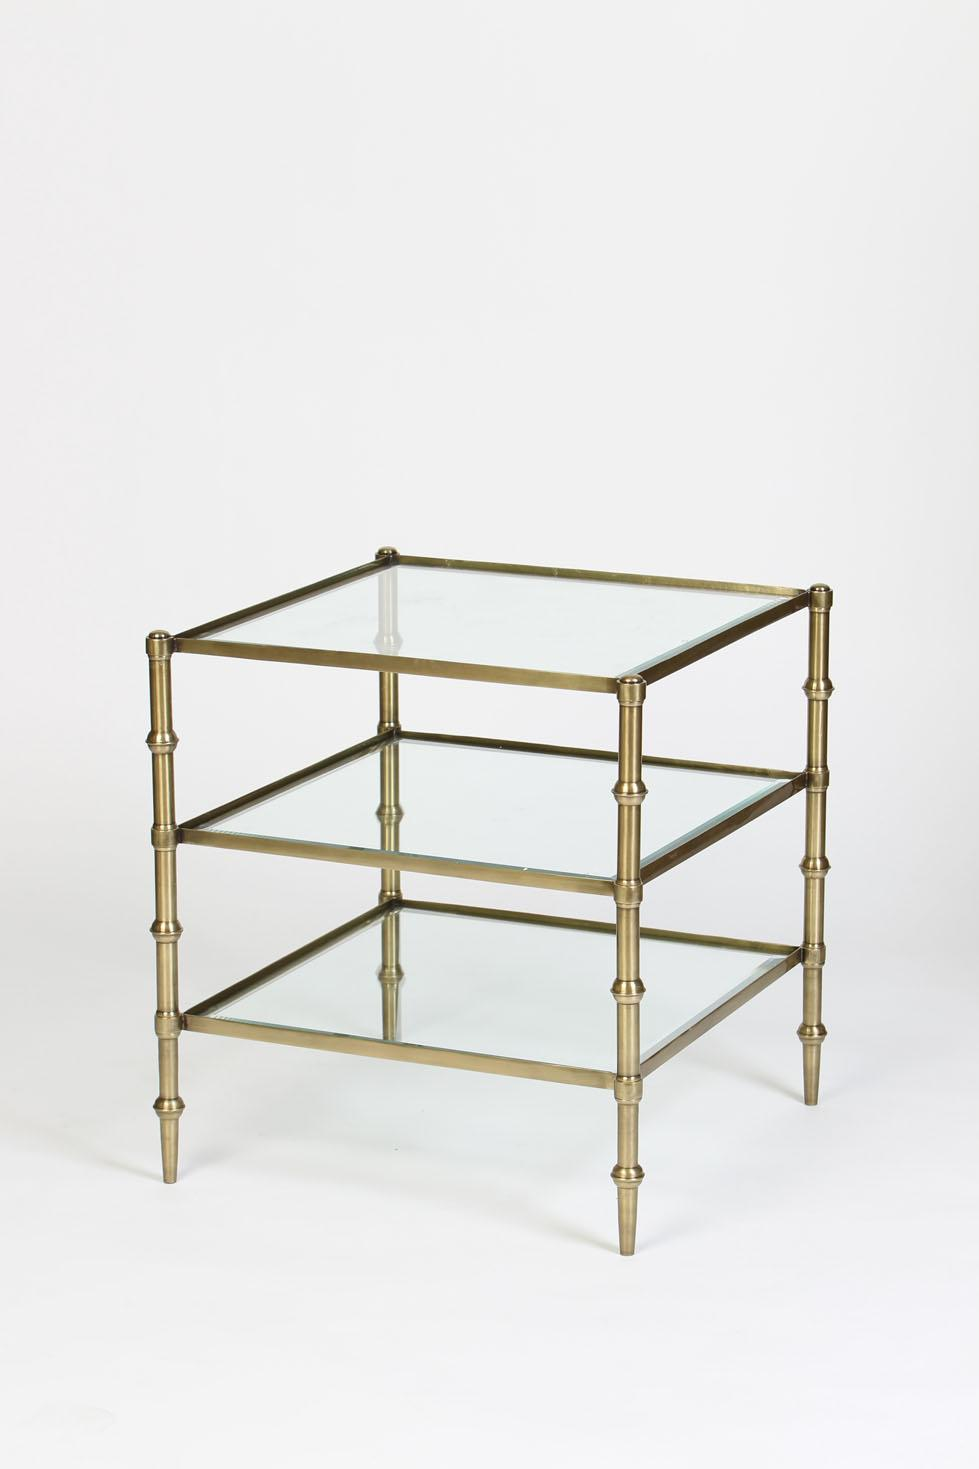 tiered square glass accent table antique brass finish boulevard urban living craft desk west elm wood side lack coffee and set mid century dining chairs decor ideas metal legs